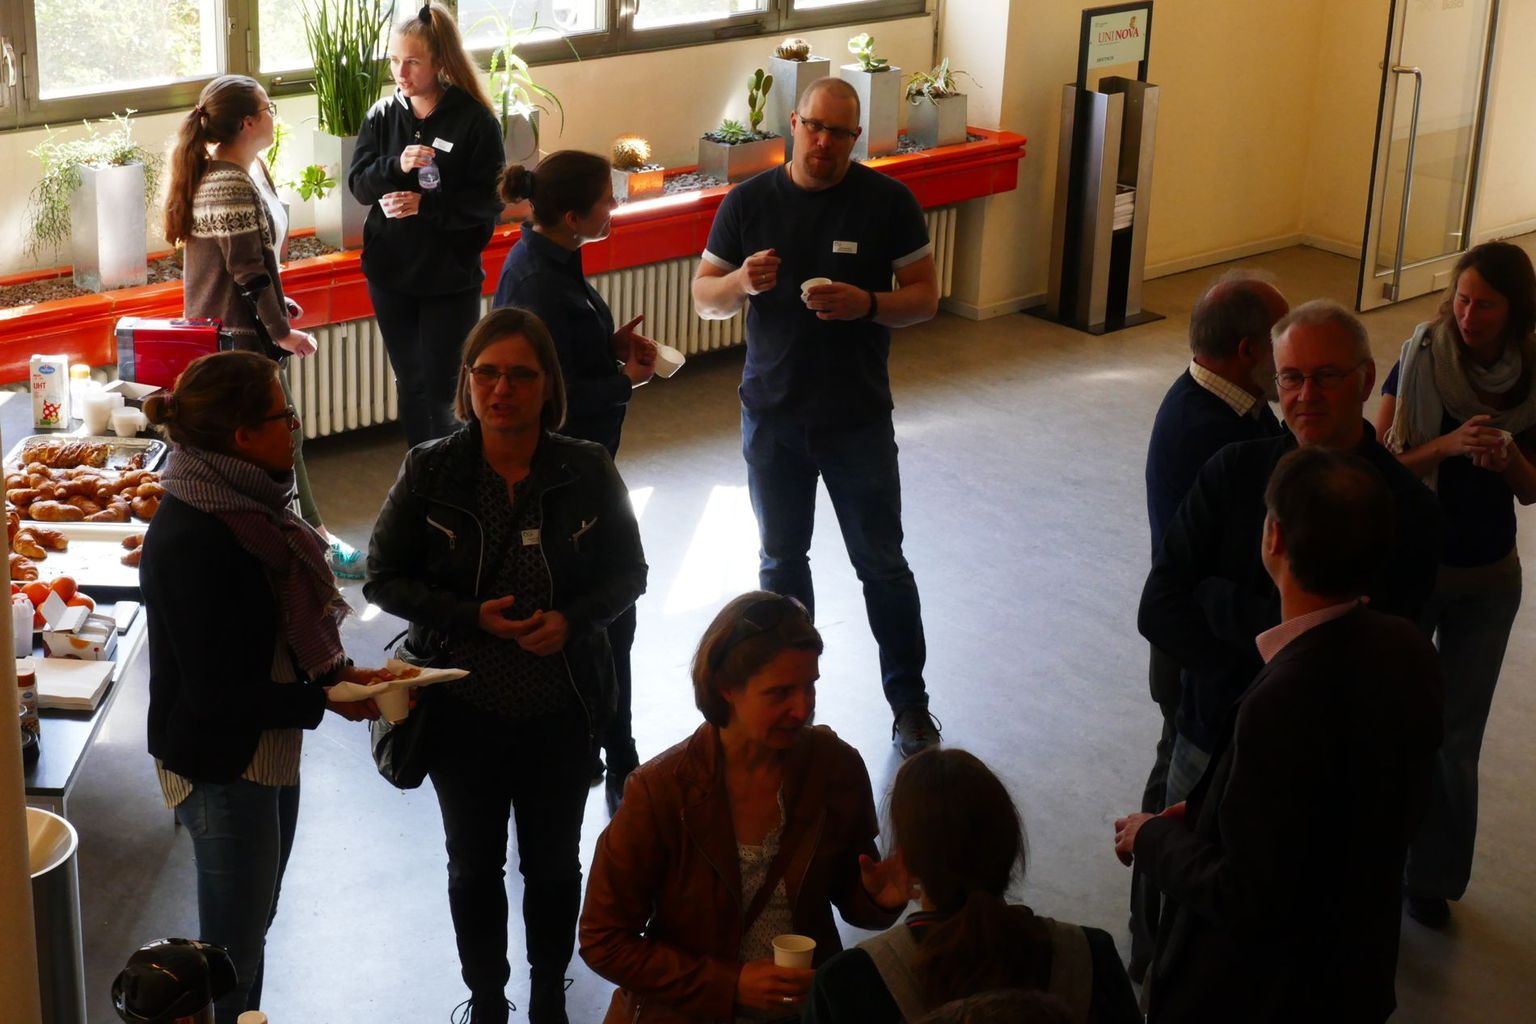 CH-QUAT Meeting 2019: coffee-break discussions